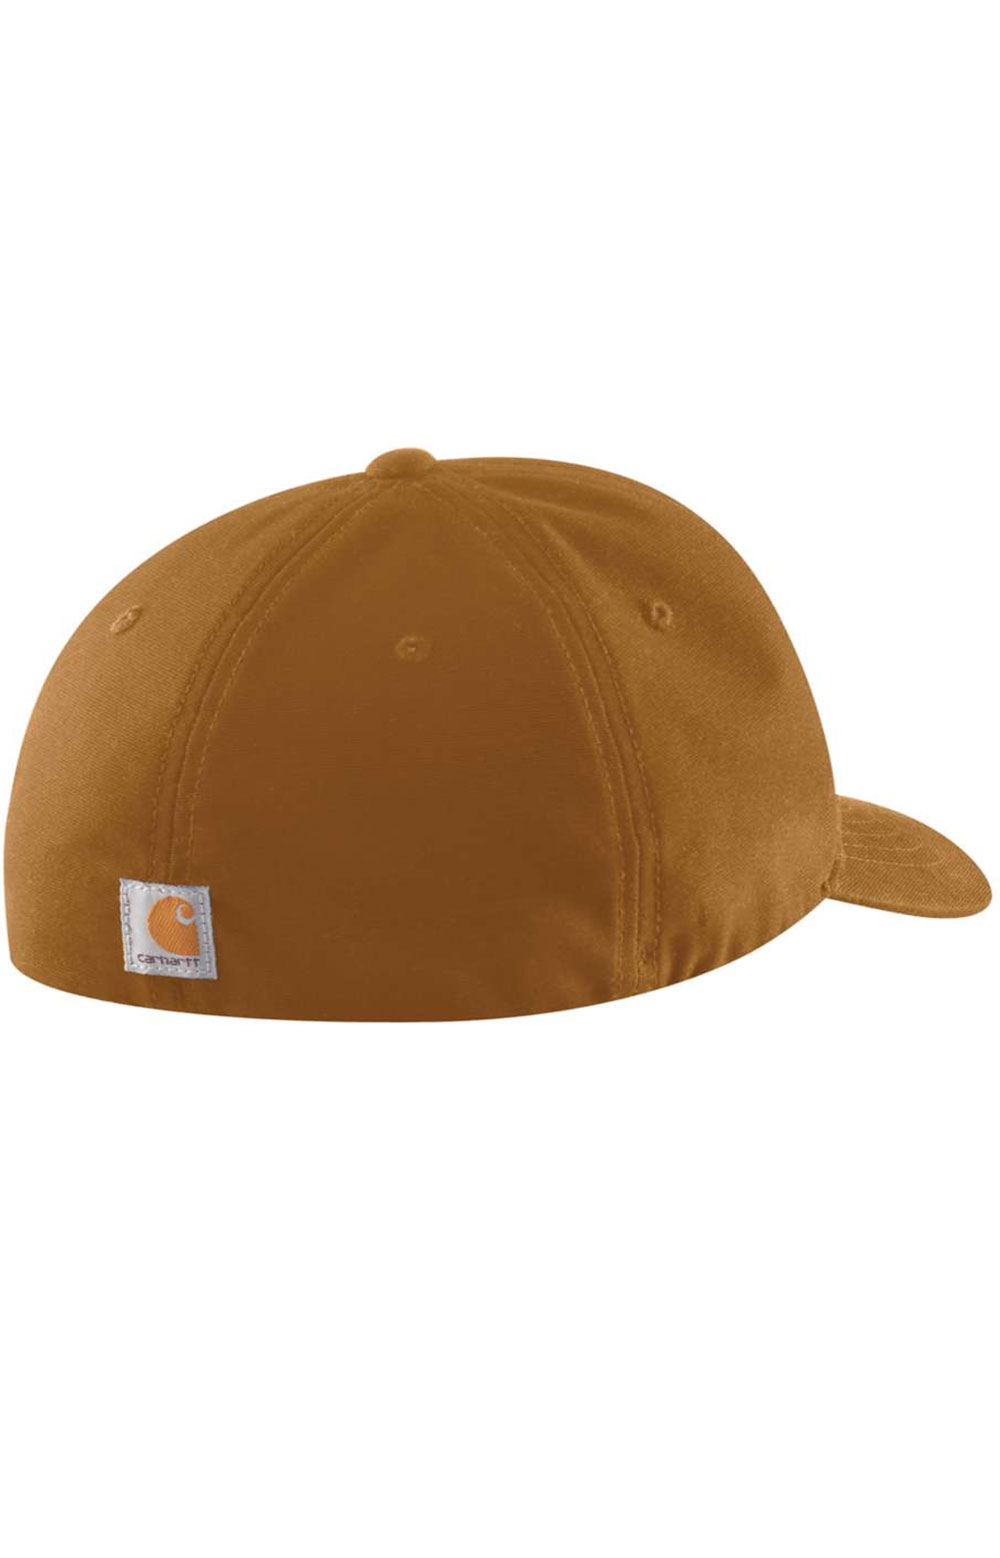 (104298) Rugged Flex Canvas Full-Back Fitted Logo Graphic Cap - Carhartt Brown 2